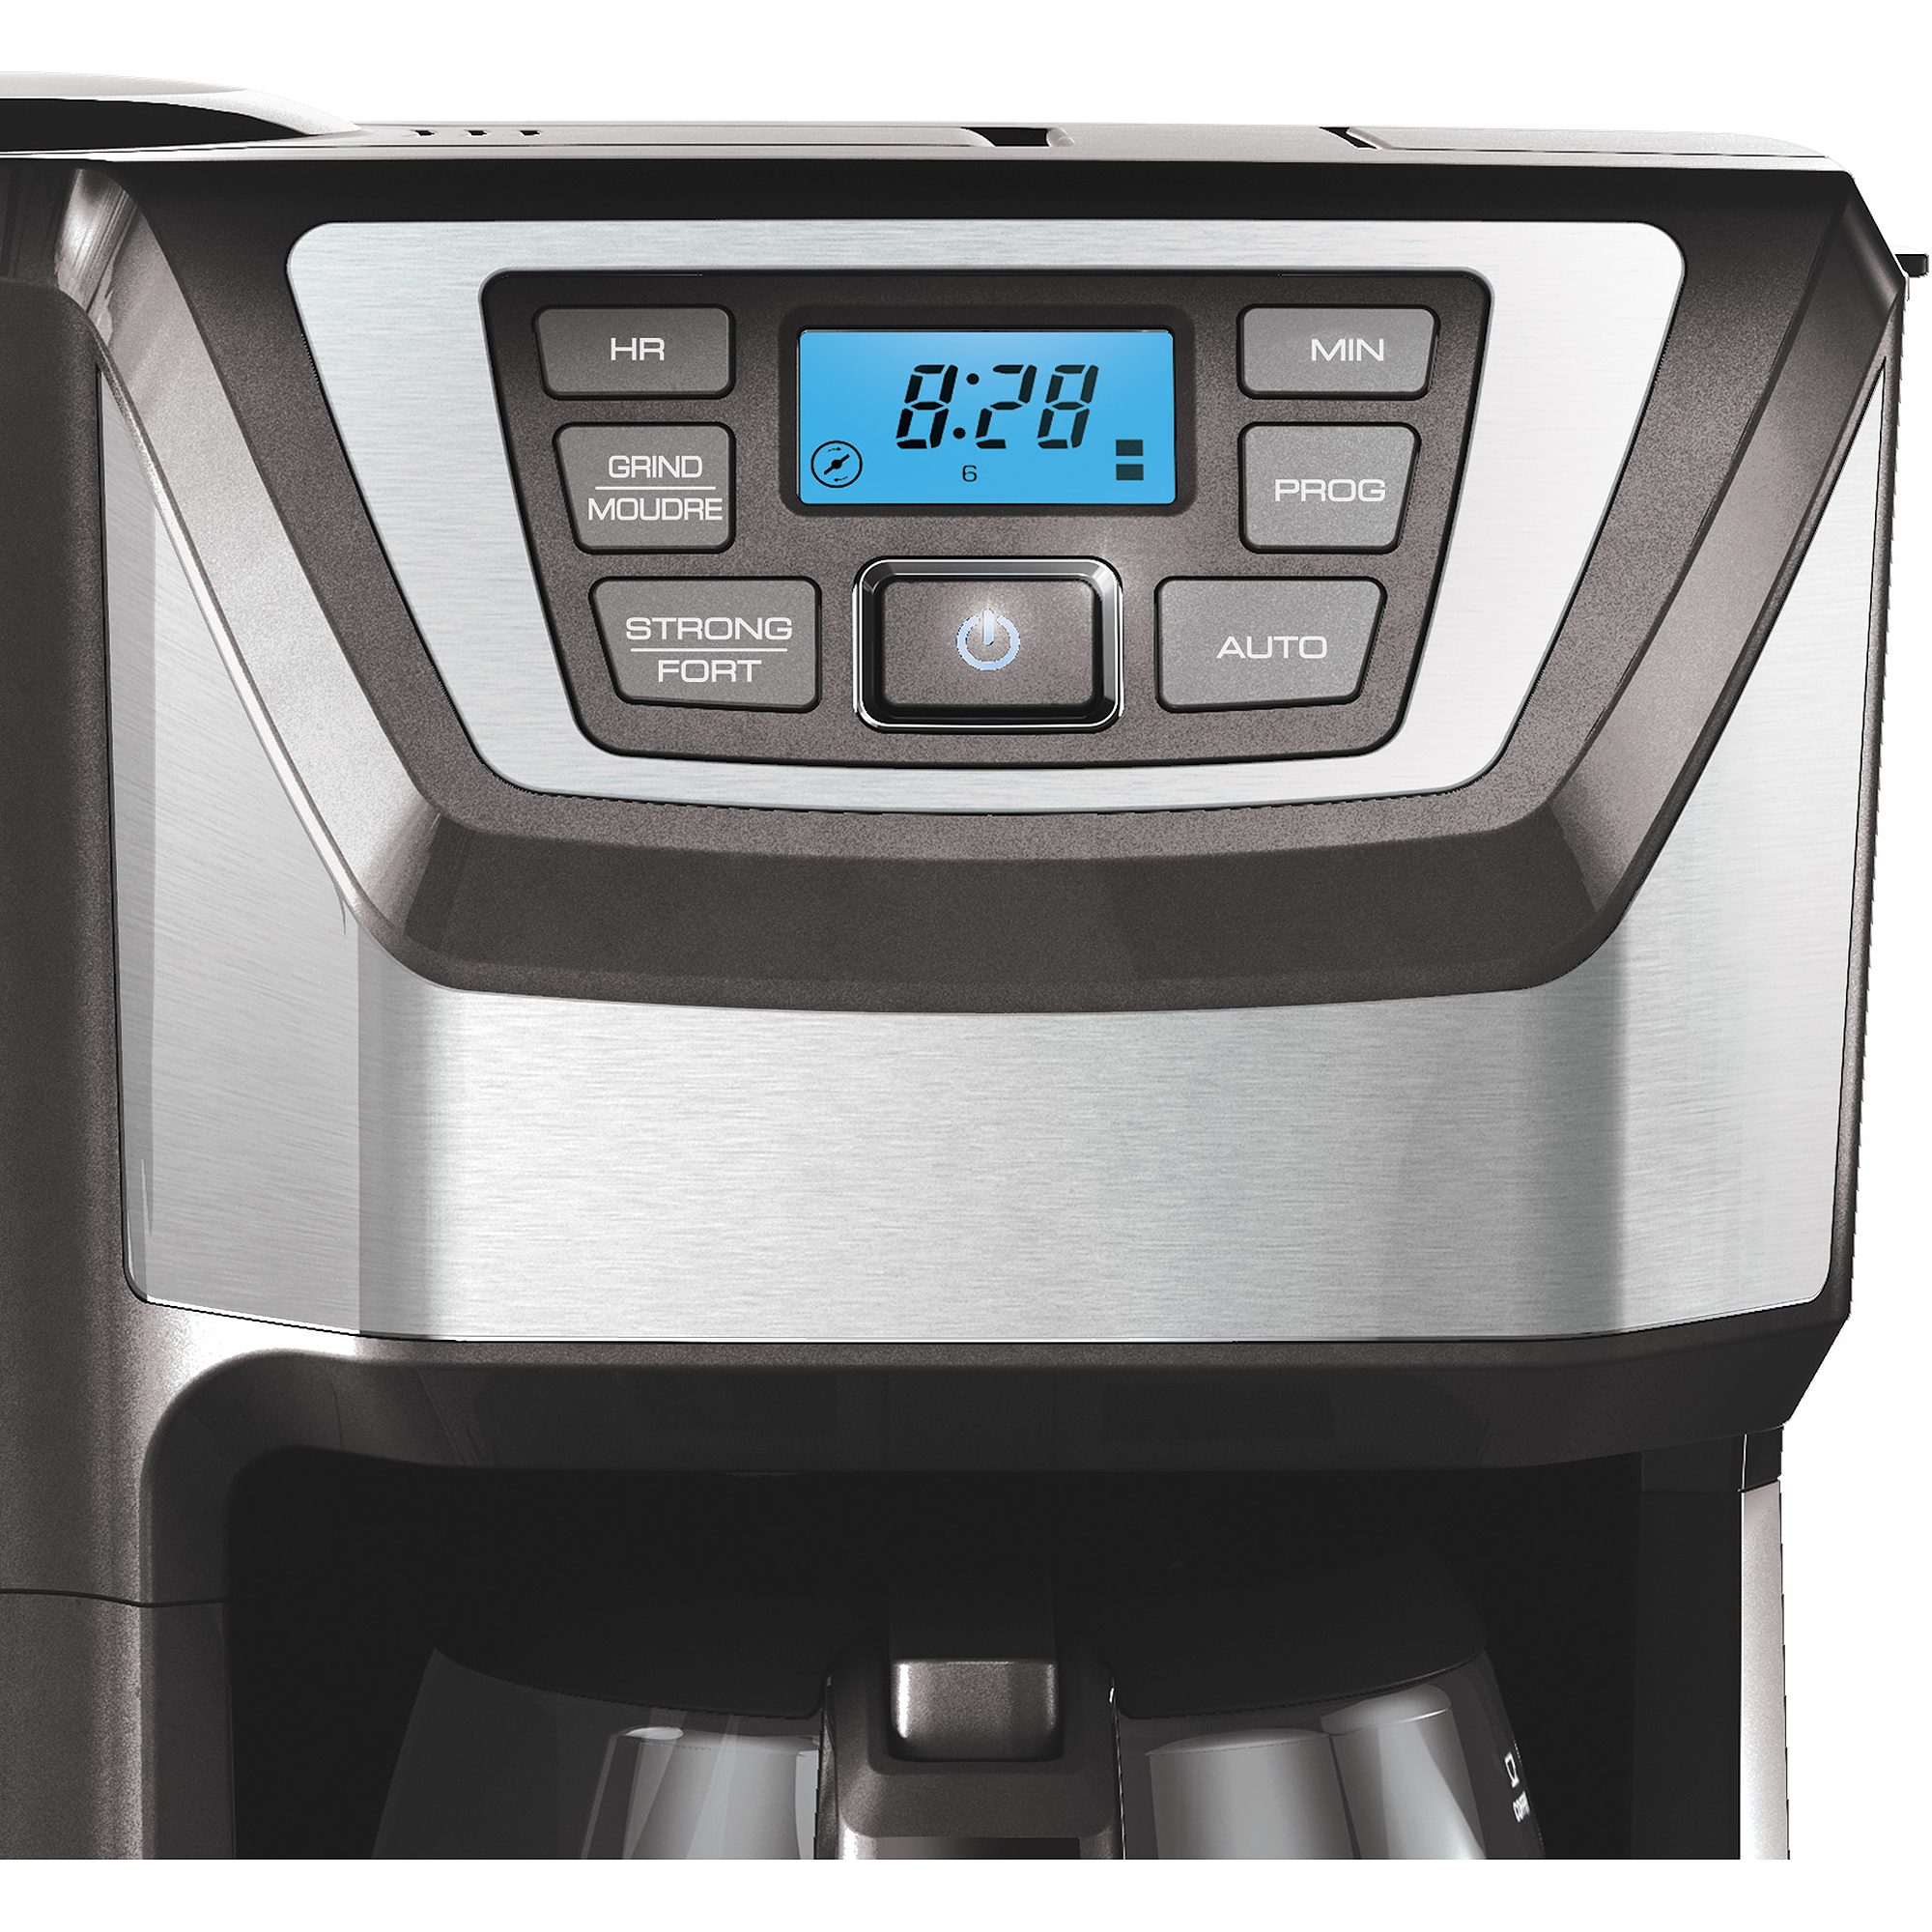 Black And Decker Coffee Maker Grinder : BLACK+DECKER Mill and Brew 12-Cup Programmable Coffee Maker with Grinder, CM500 eBay